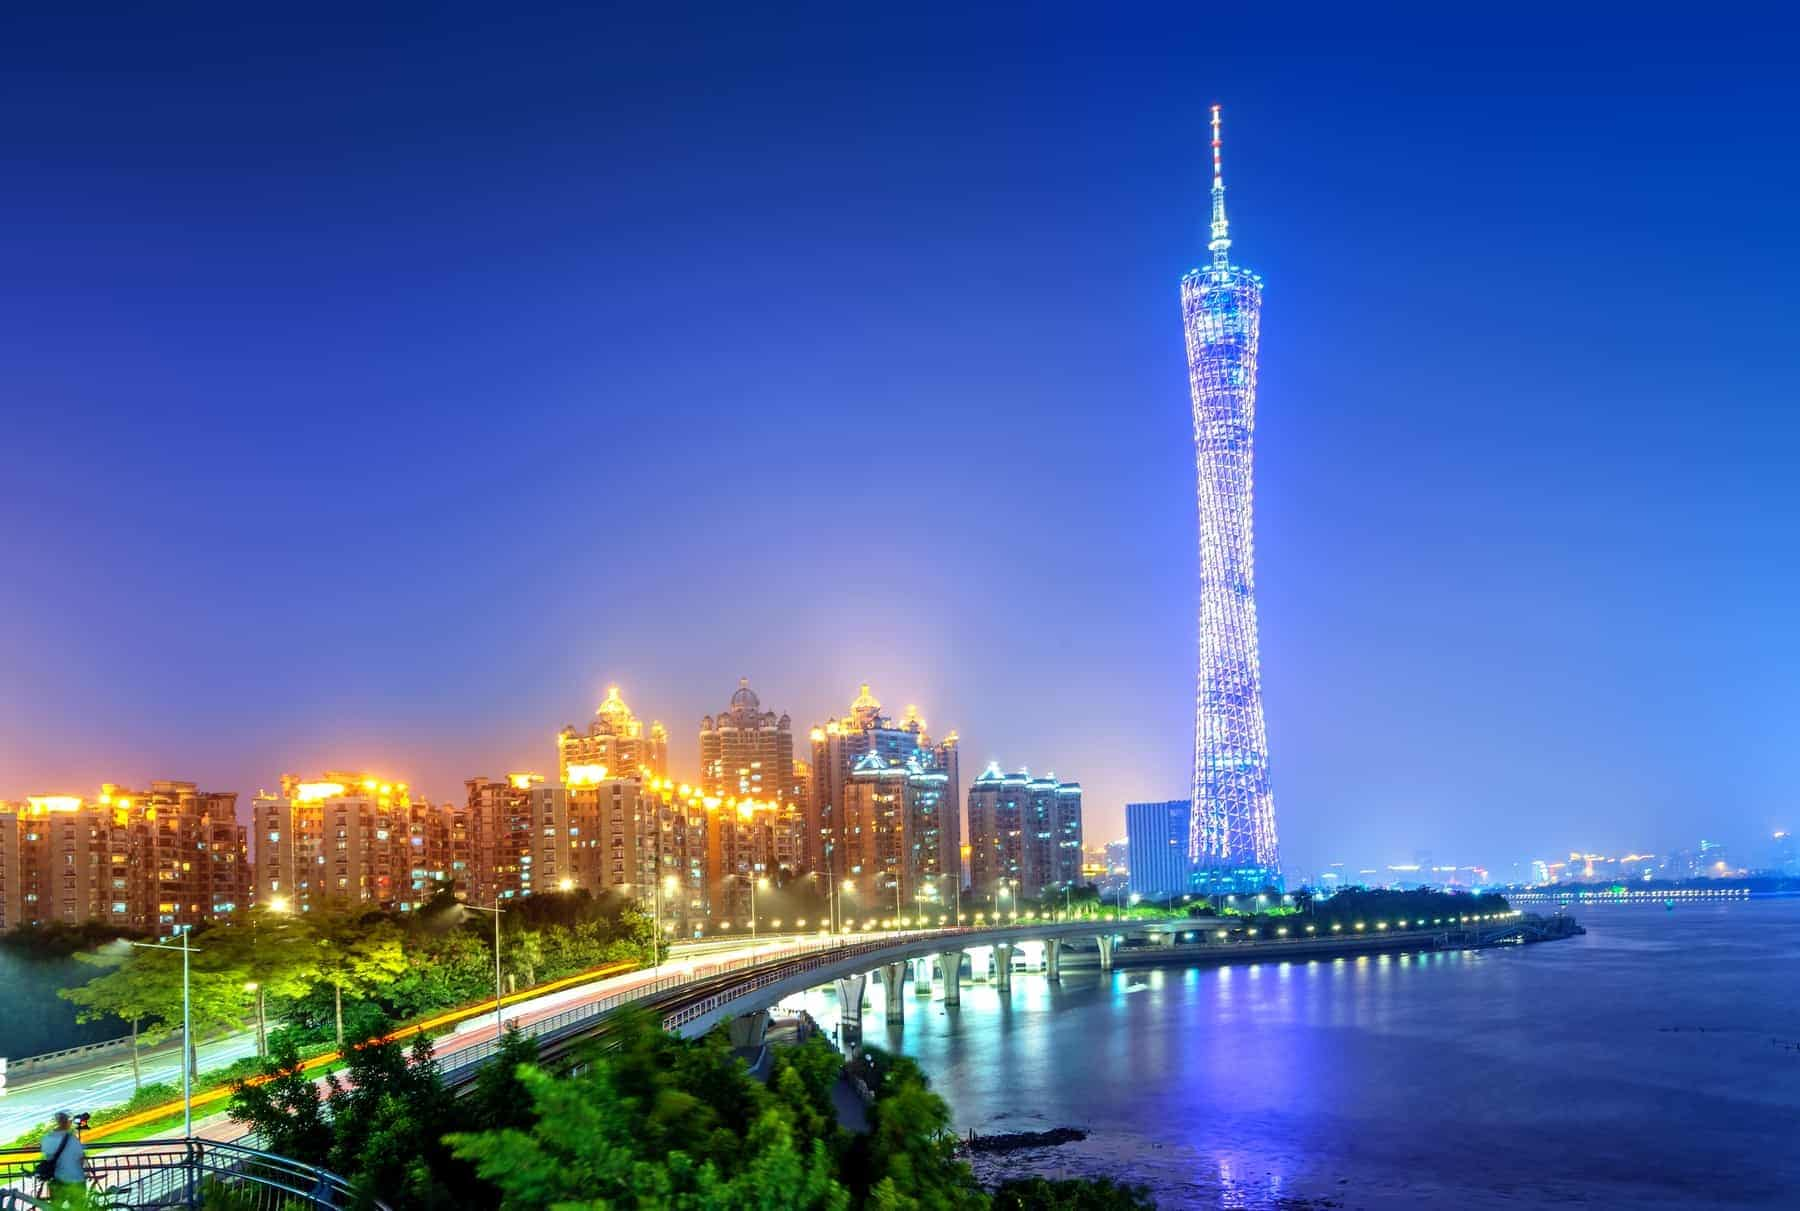 View of Canton tower (600m) in Guangzhou. One of the most famous landmark in Guangzhou city.